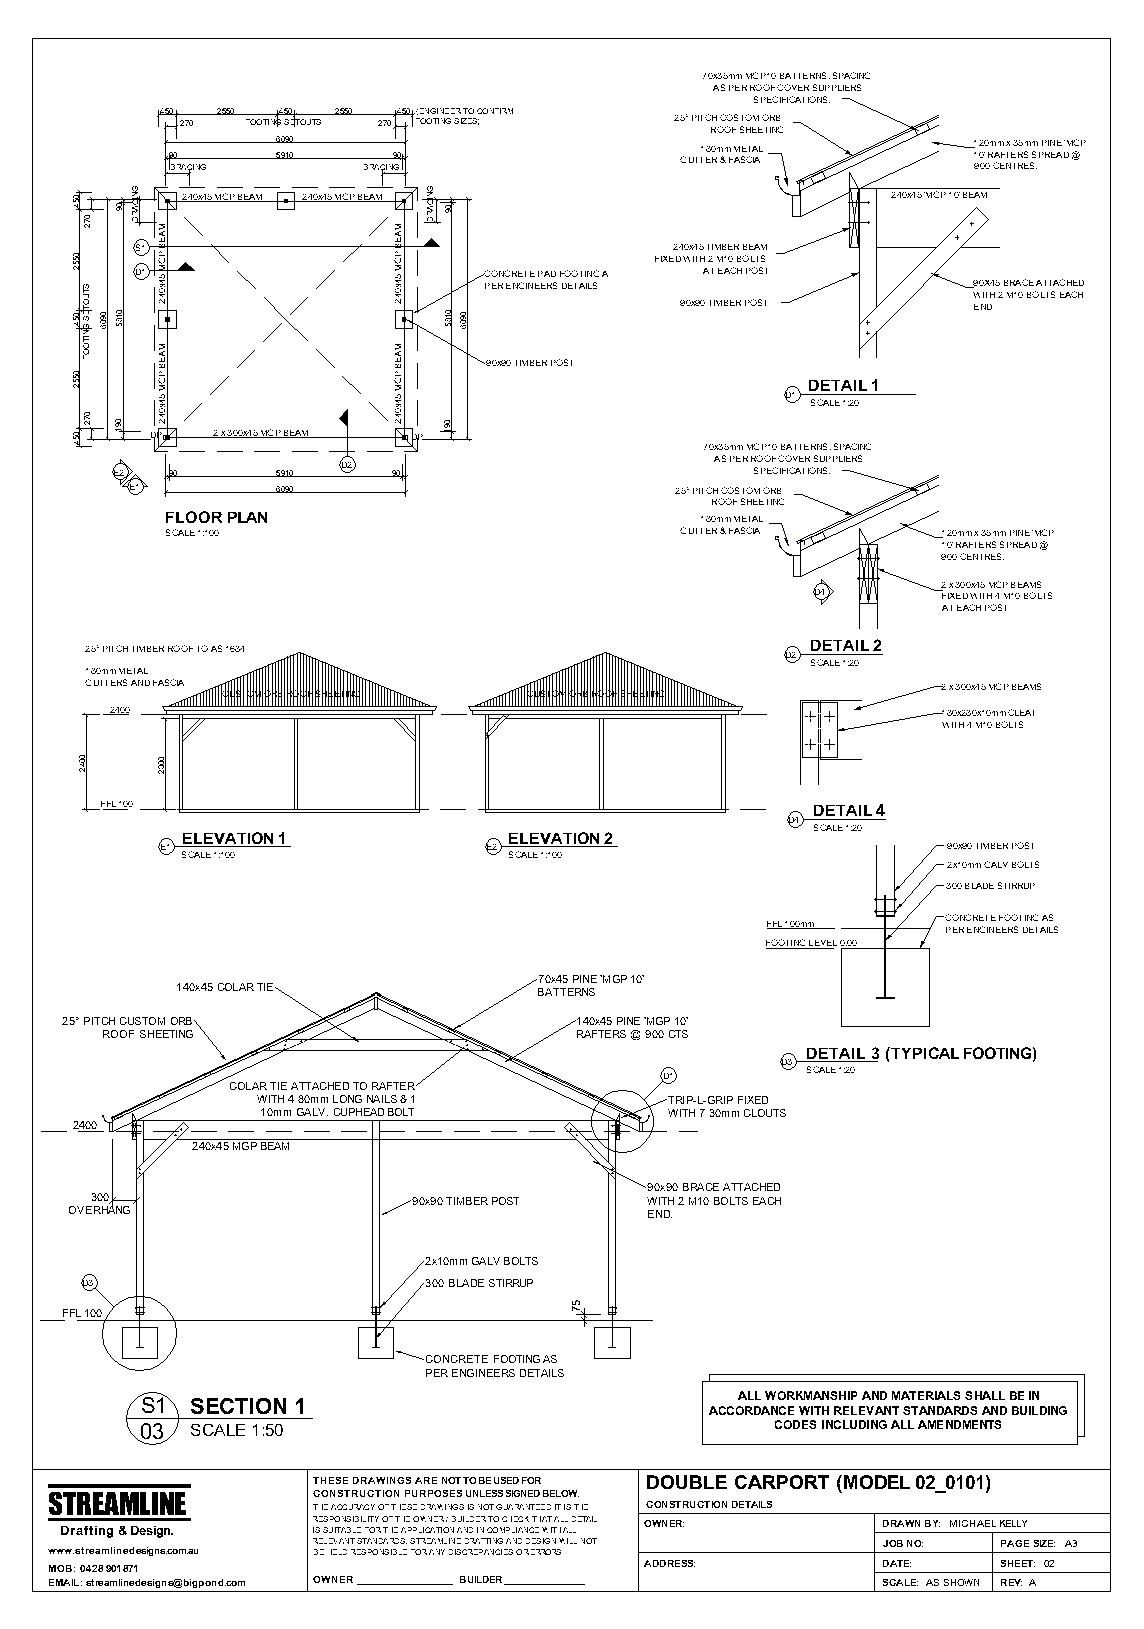 download free carport plans building carport pinterest